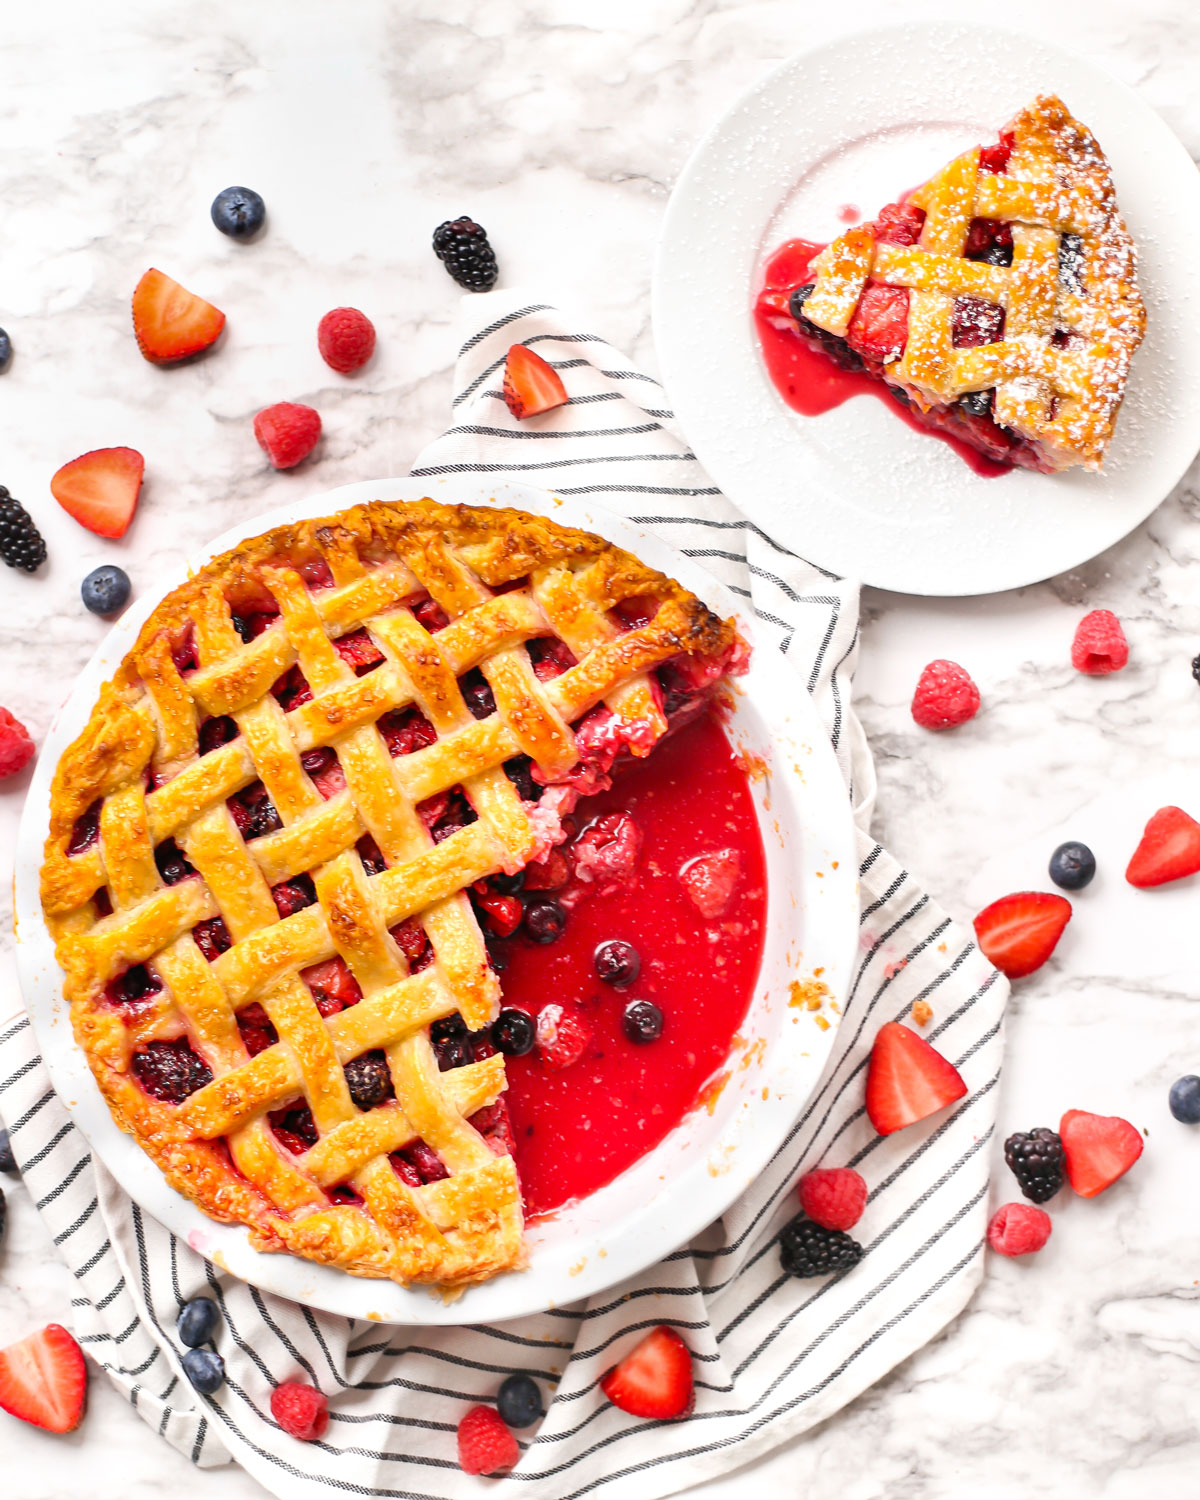 a mixed berry pie with a slice served on a plate